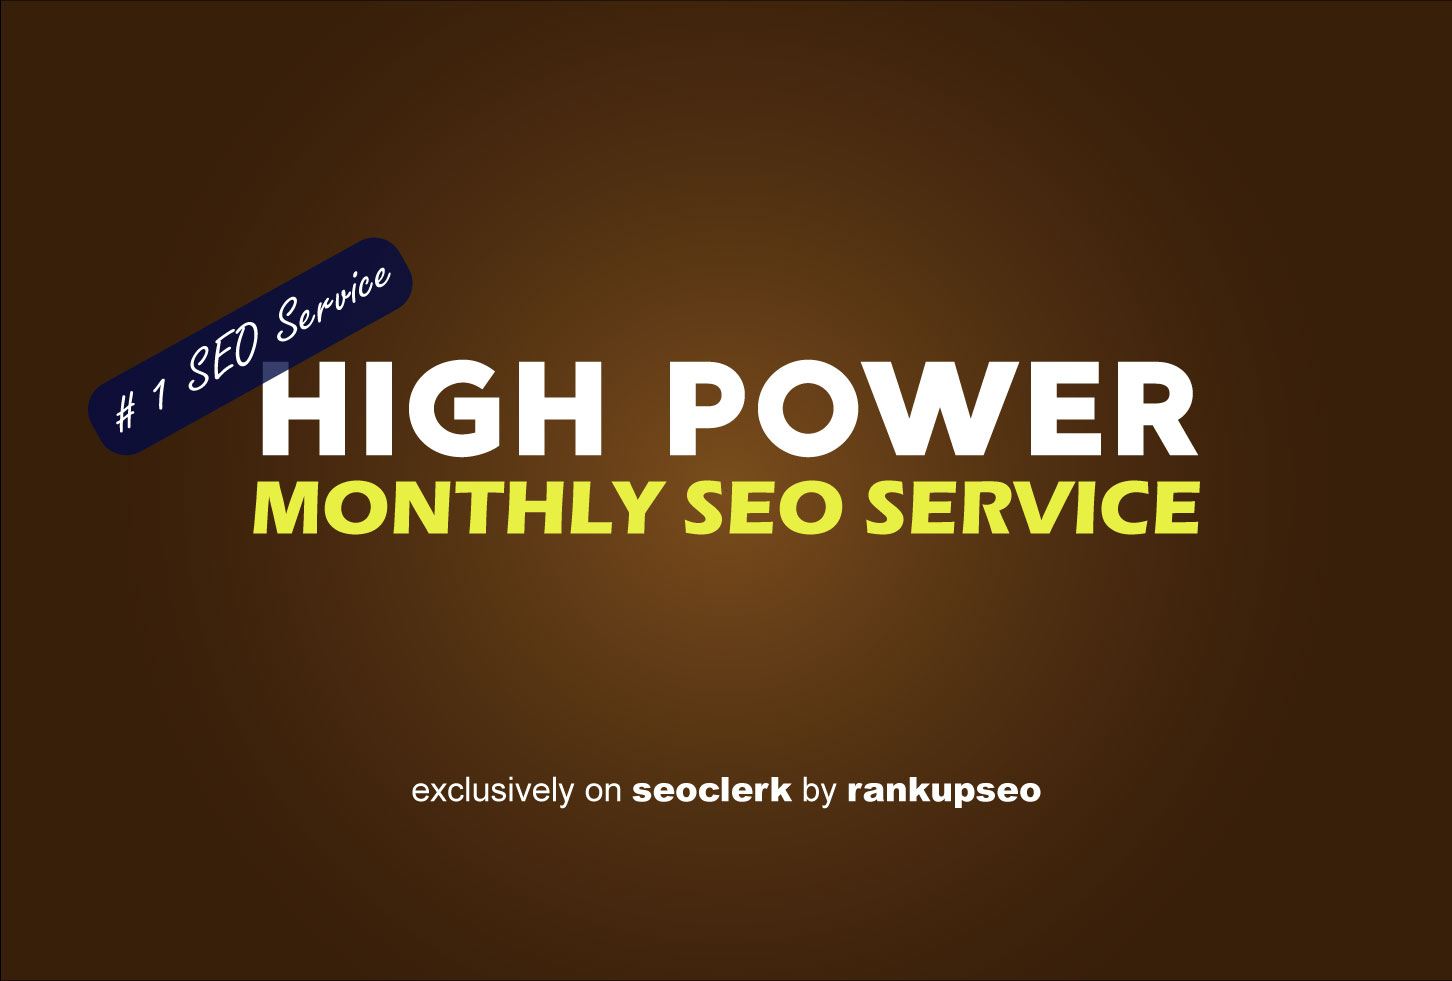 Whitehat HIGH POWER MONTHLY SEO SERVICE for Website Ranking